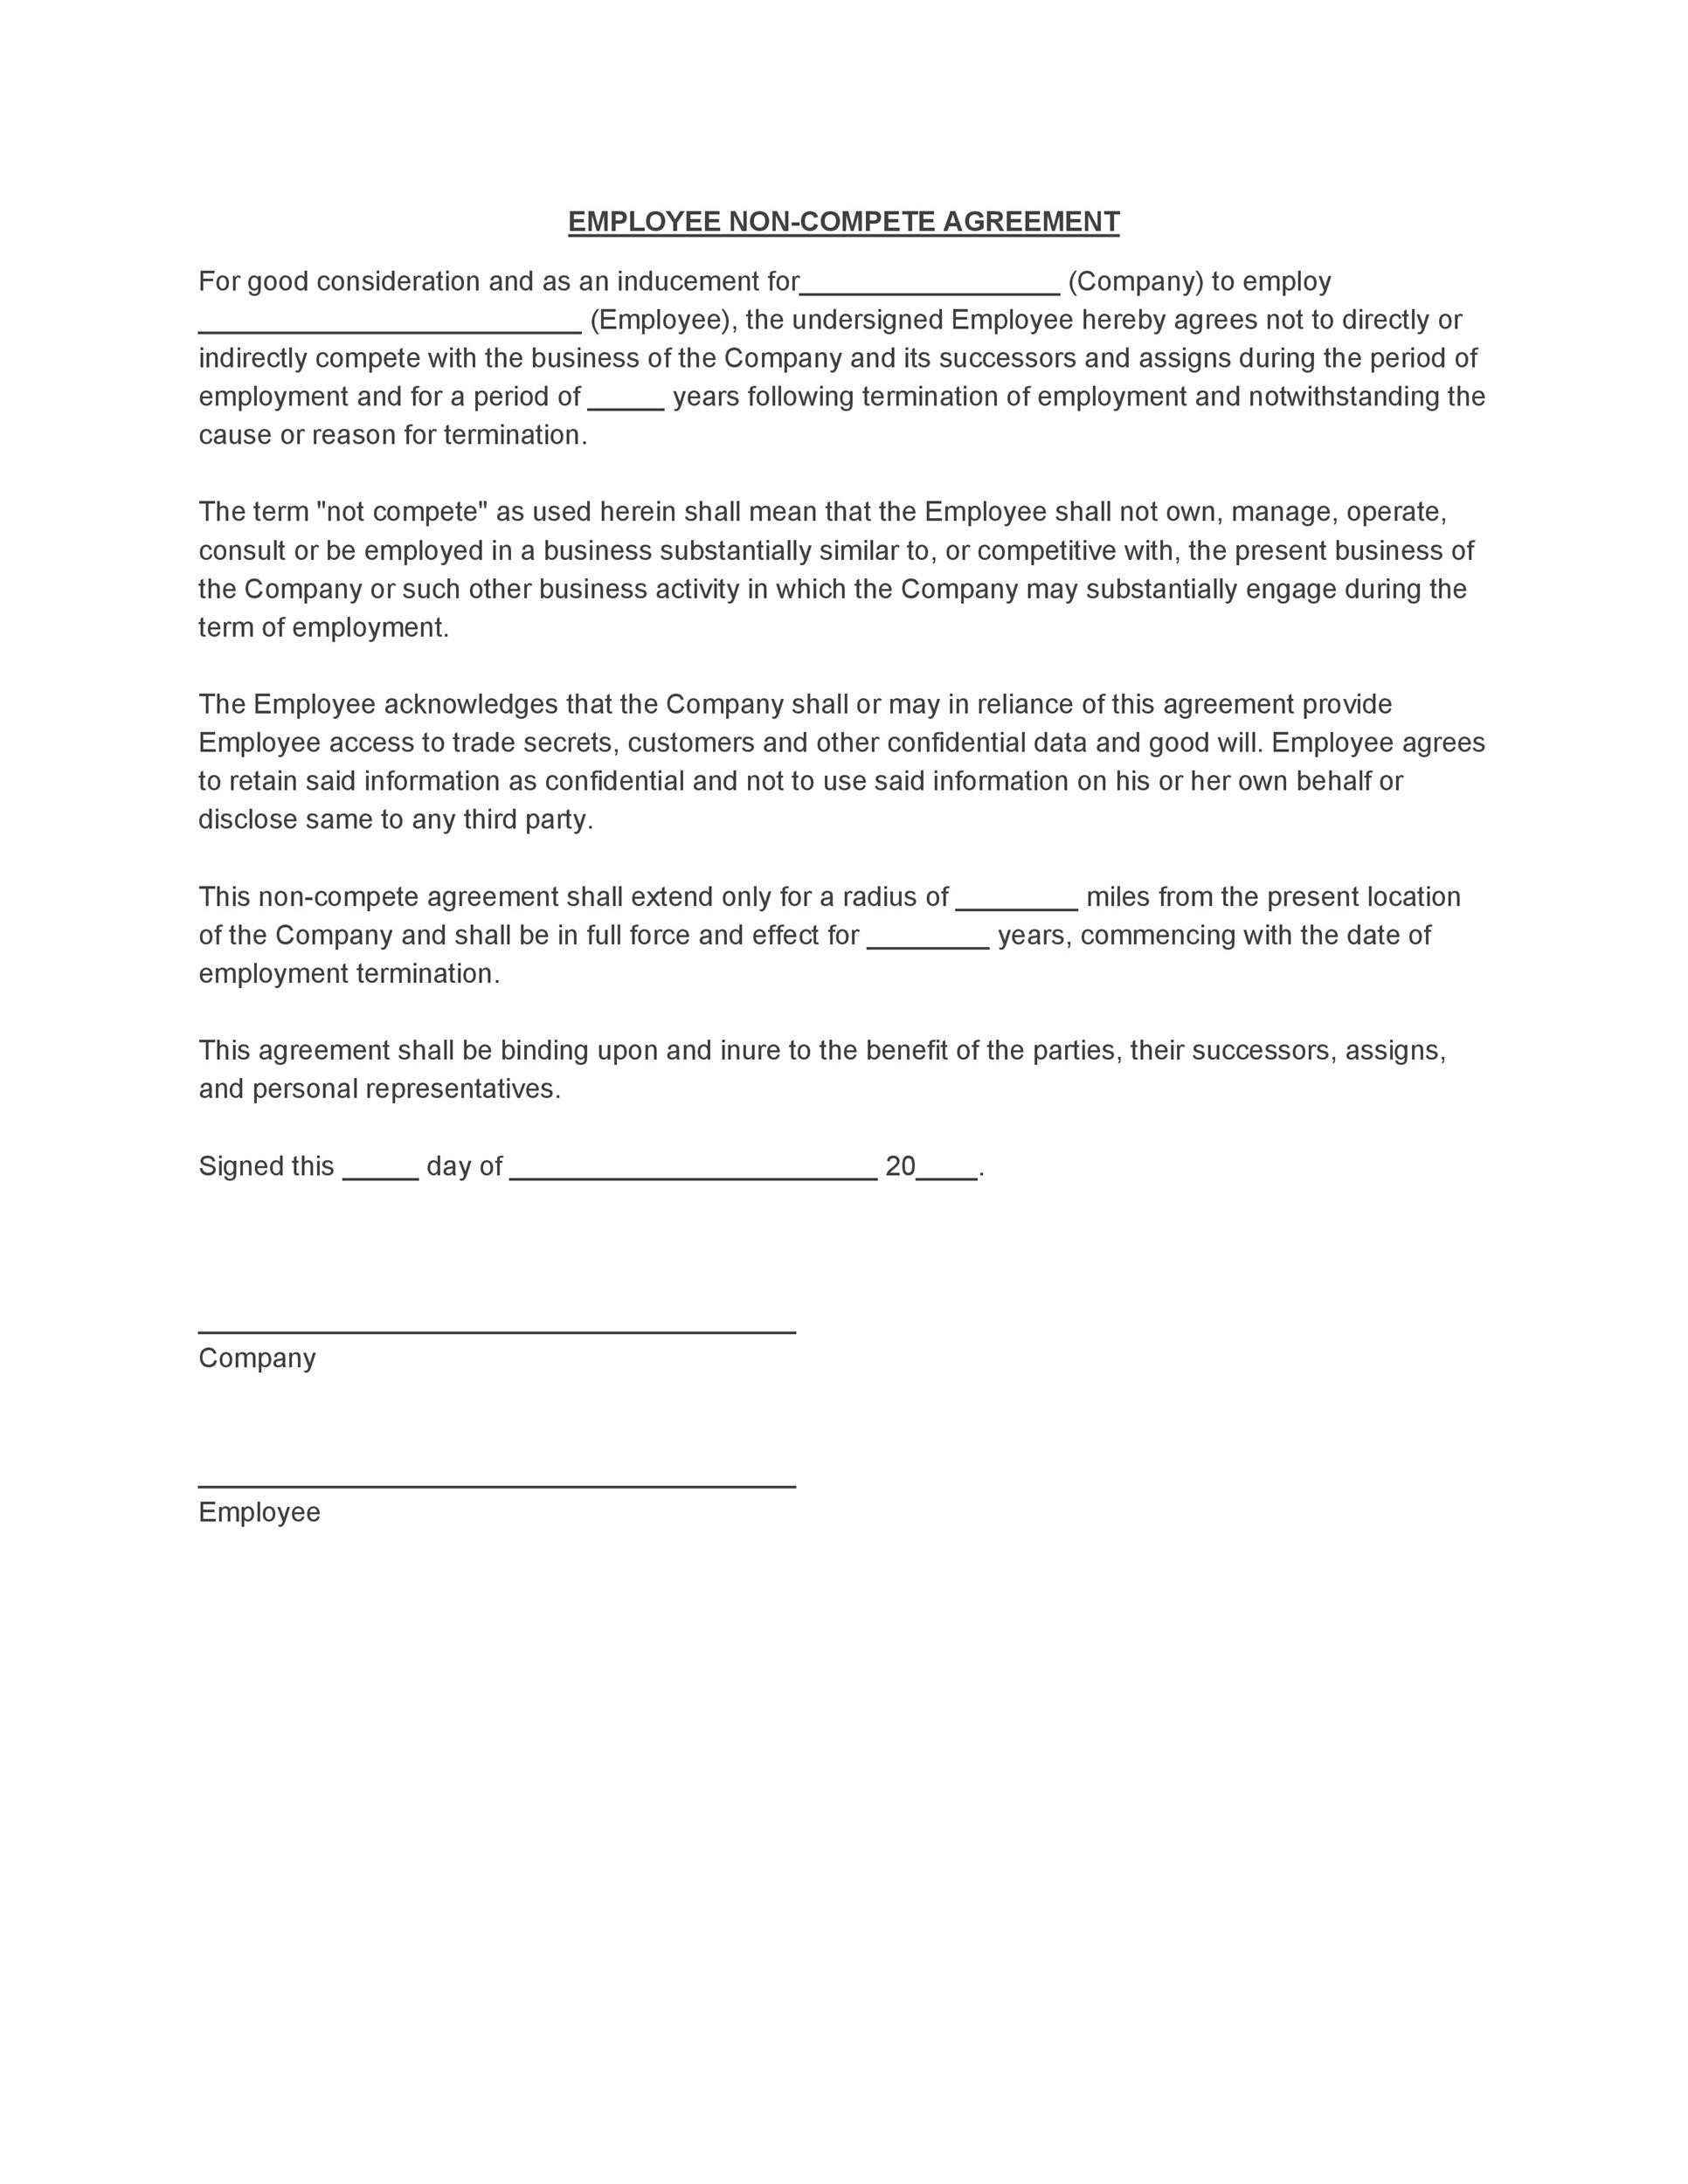 Non-Compete Agreement Template 13